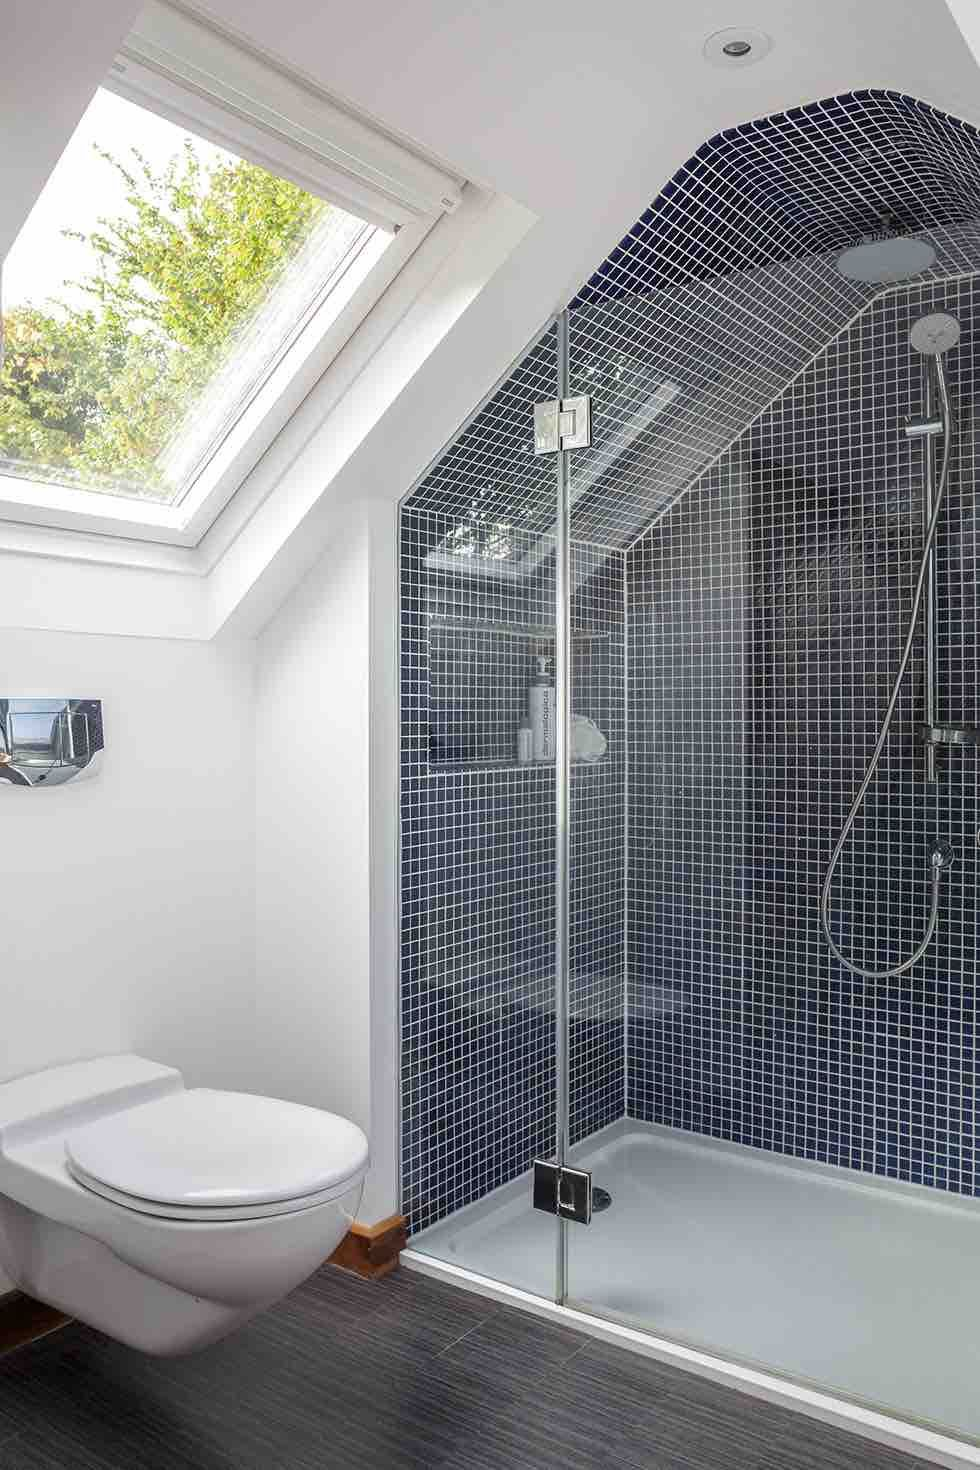 Loft Bathroom Alcoves And Sloping Roofs. Itu0027s The Little Details That Make A  New House A Home. Claire Lloyd Shares Some Of The Latest Design Solutions  For ...